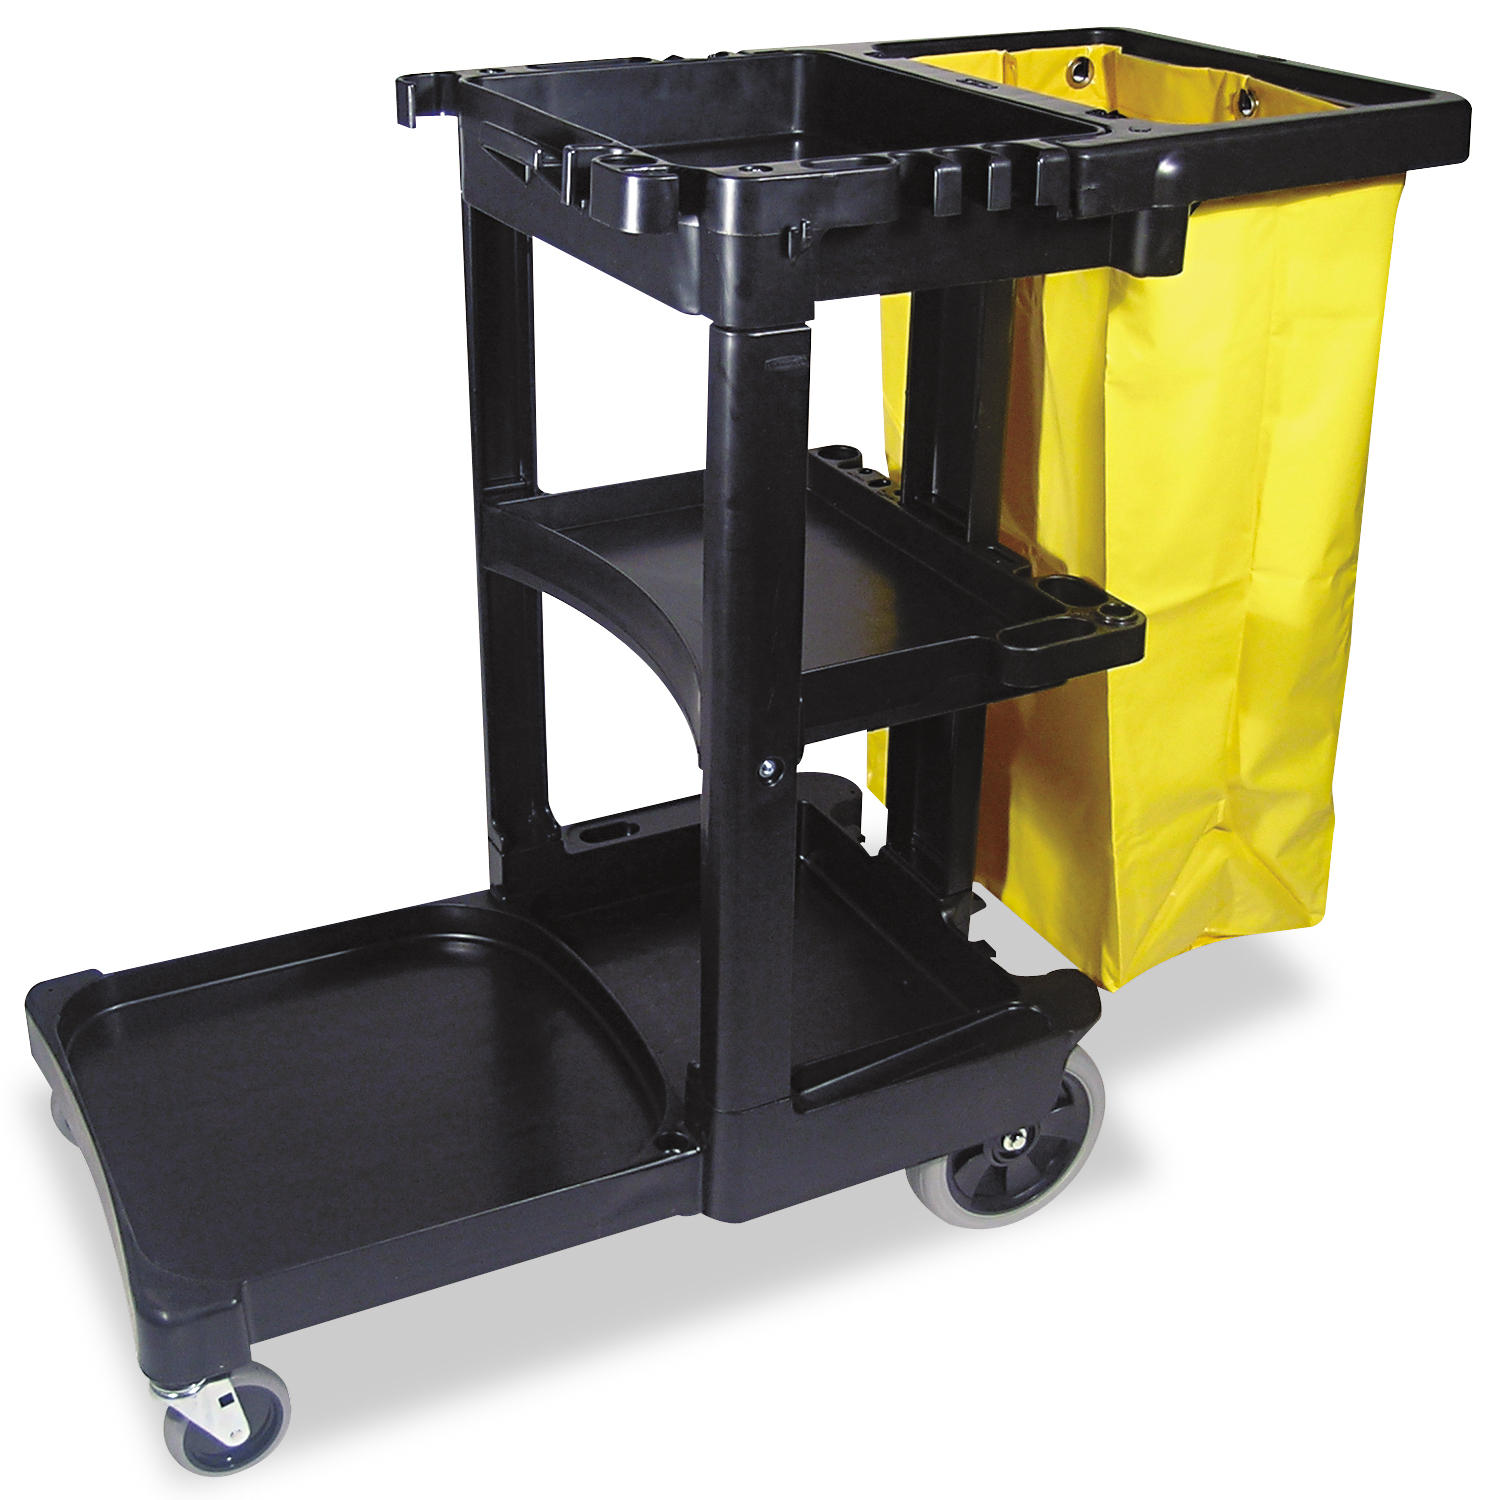 Rubbermaid Cleaning Cart with Zippered Bag With 3 Shelves